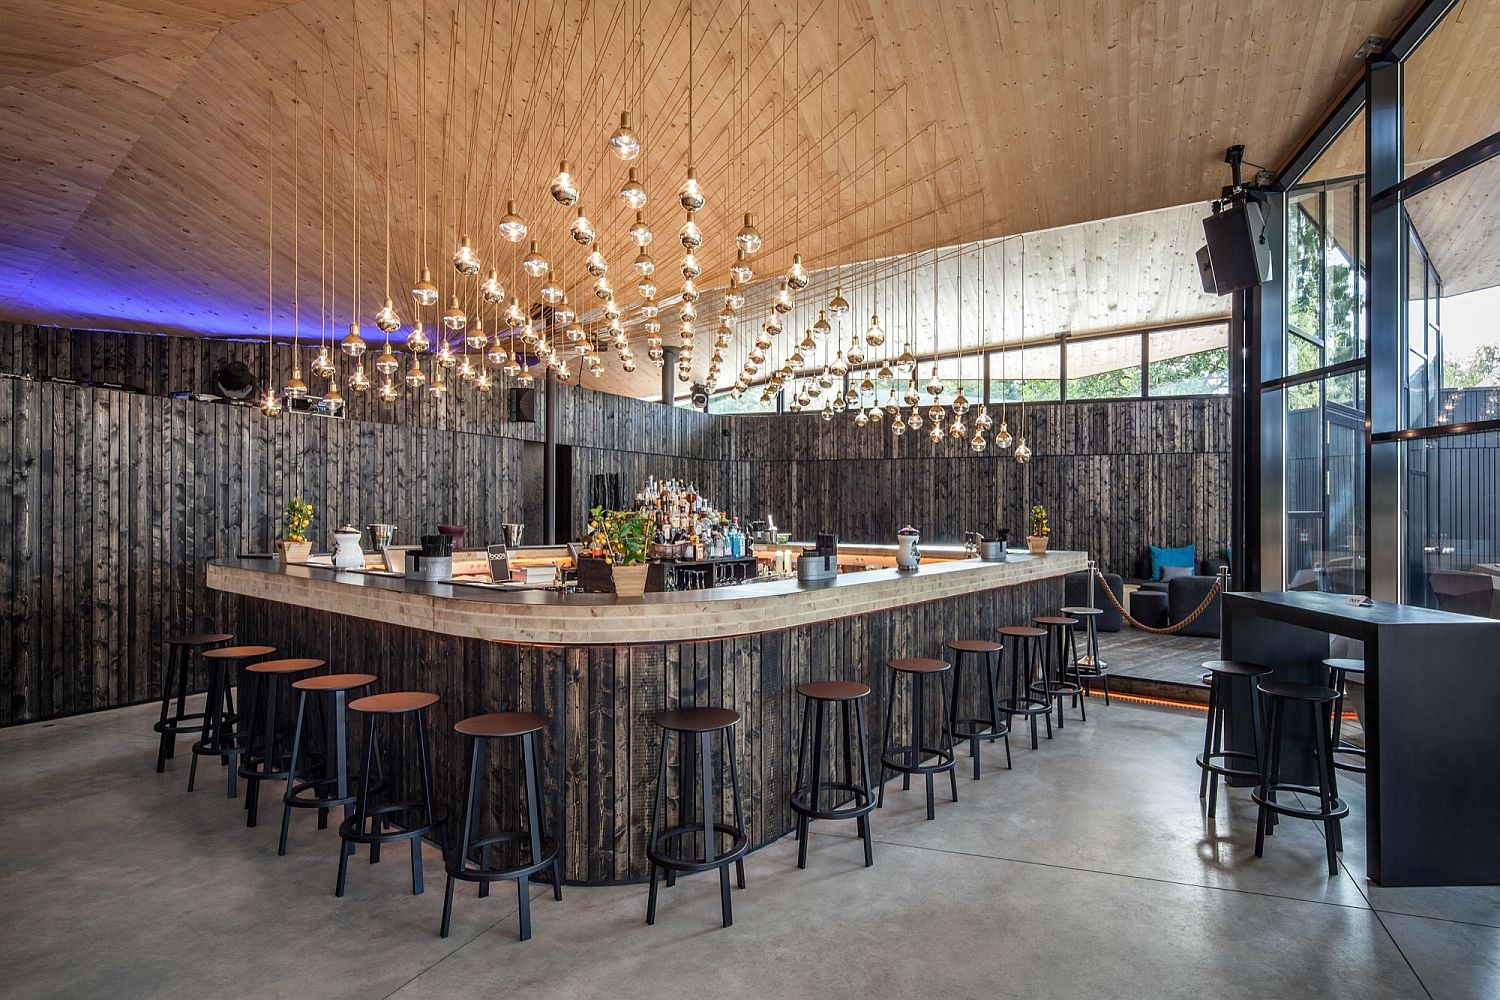 Fabulous lighting adds sparkle to the bar at the Boos Beach Club Restaurant